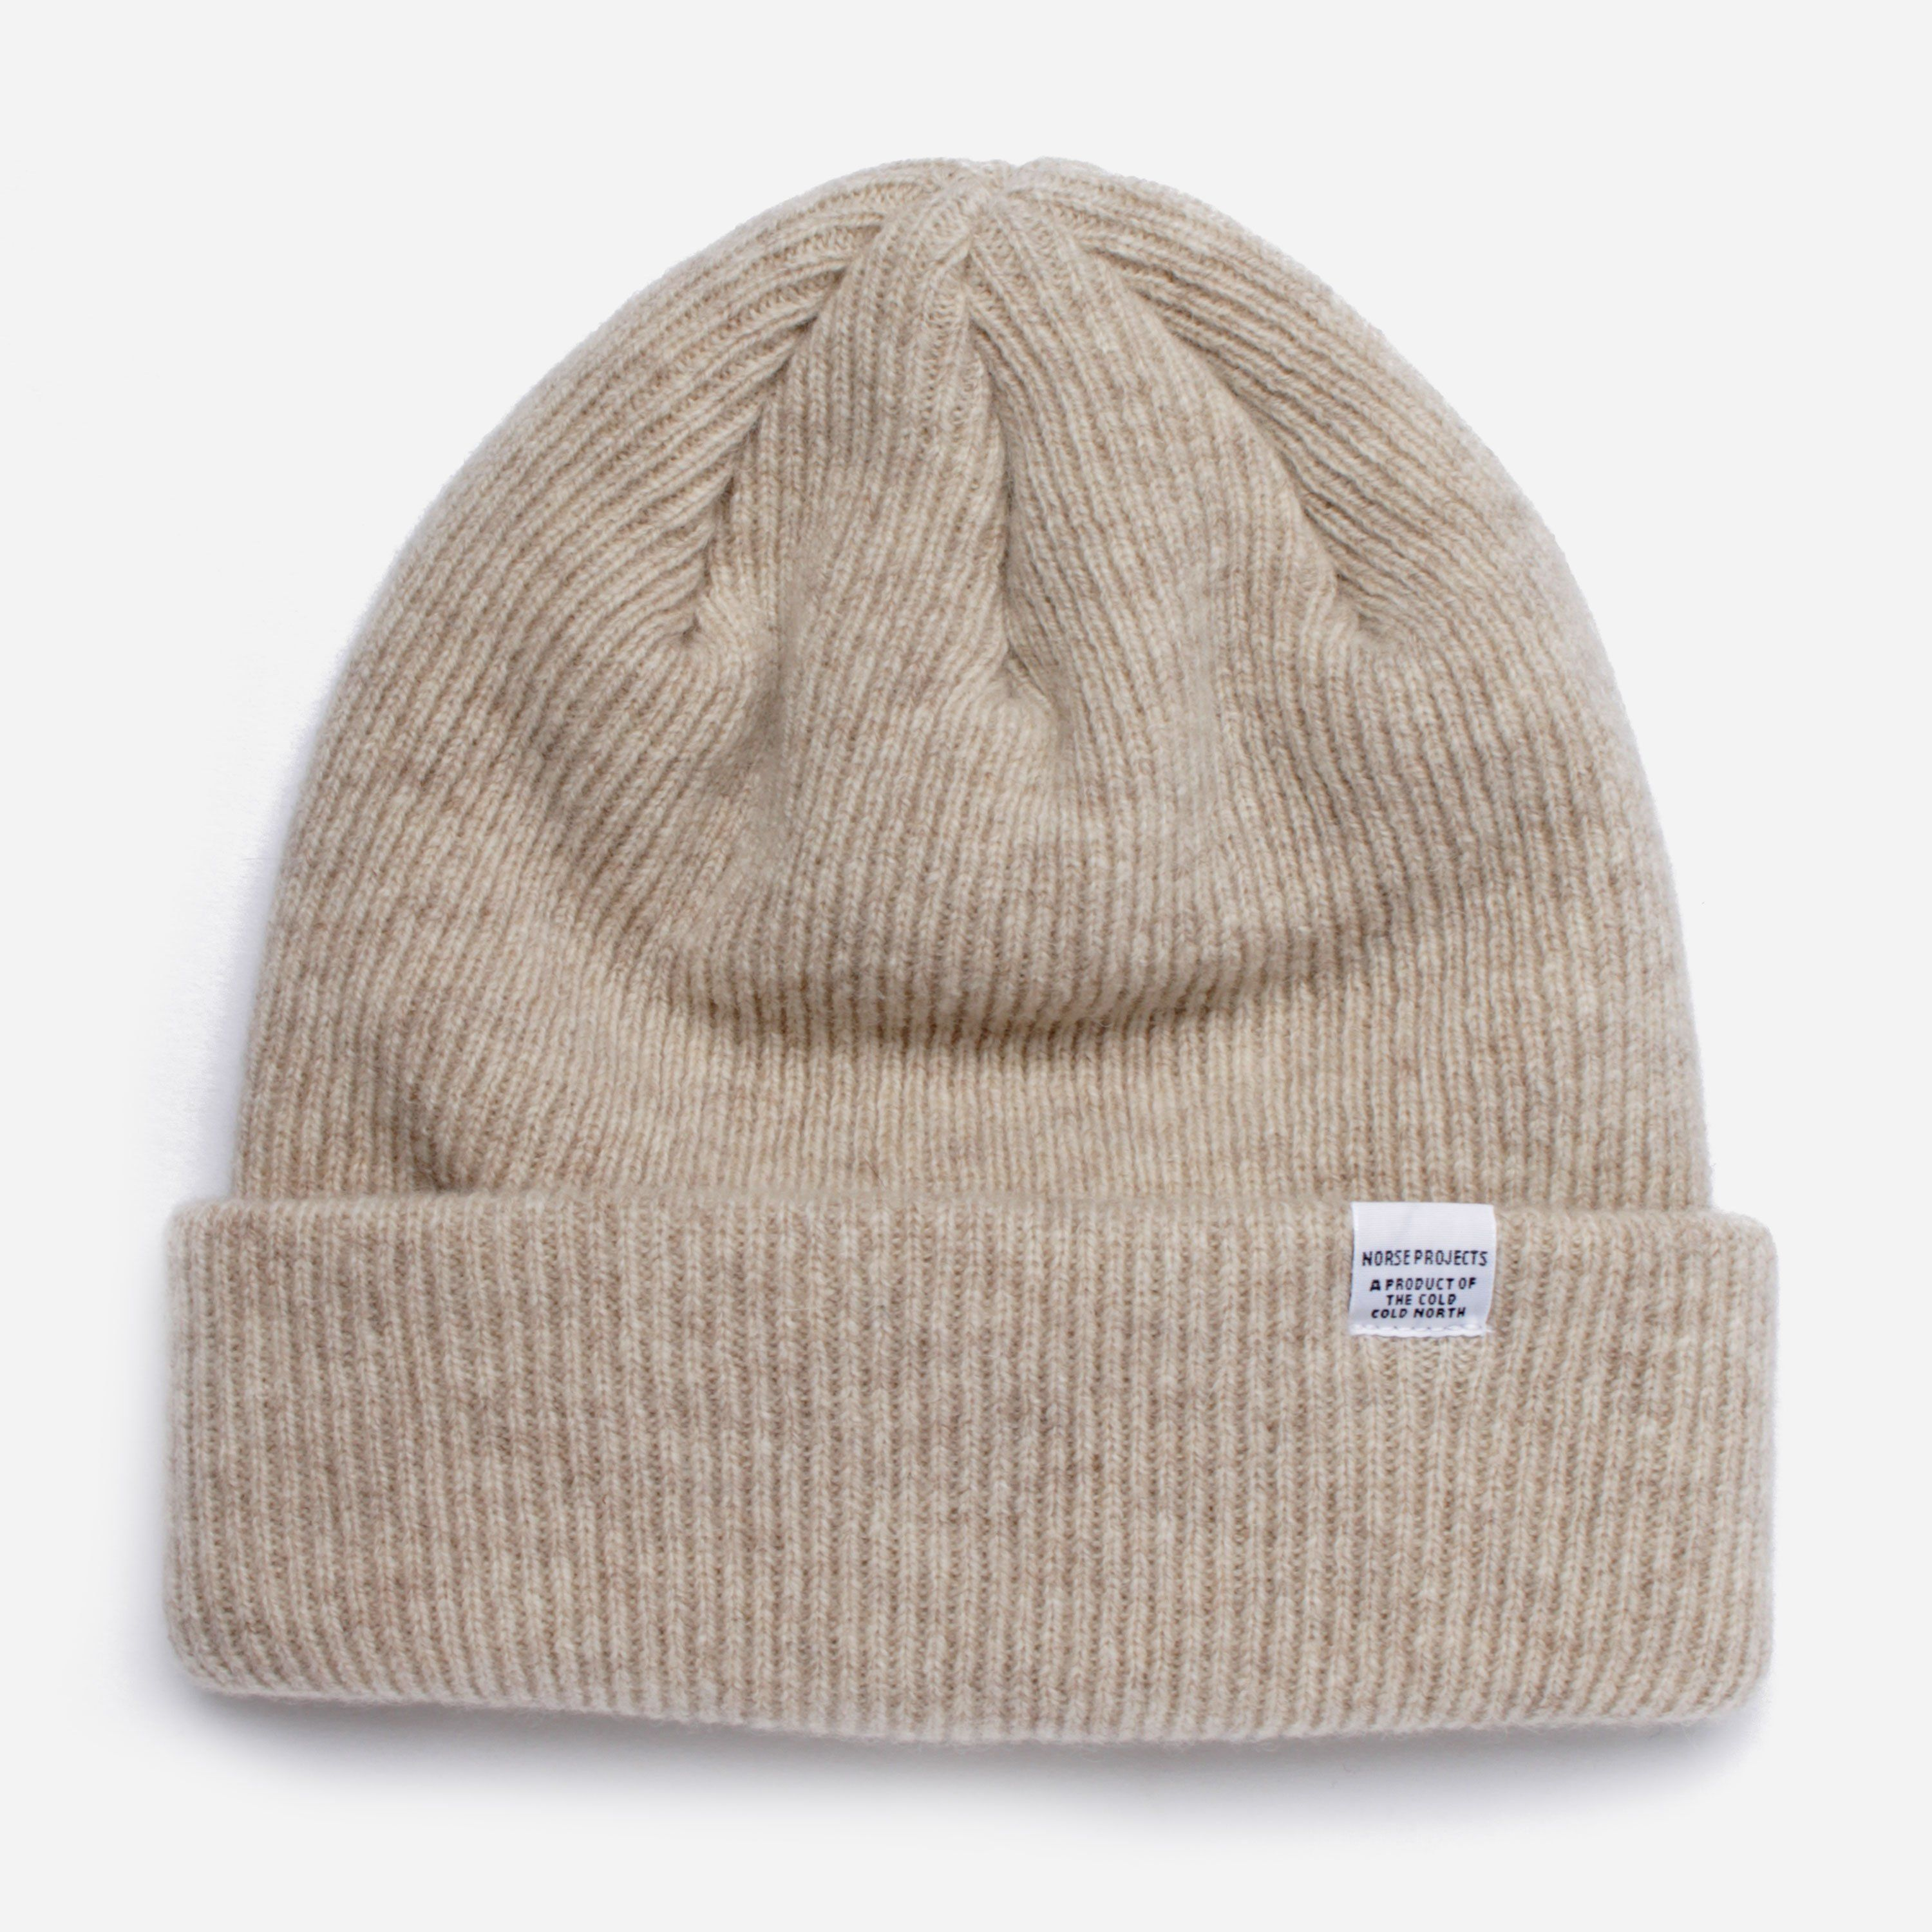 4faf095b1 Norse Projects Knitted Beanie | Overflow (Neutral) | Norse projects ...